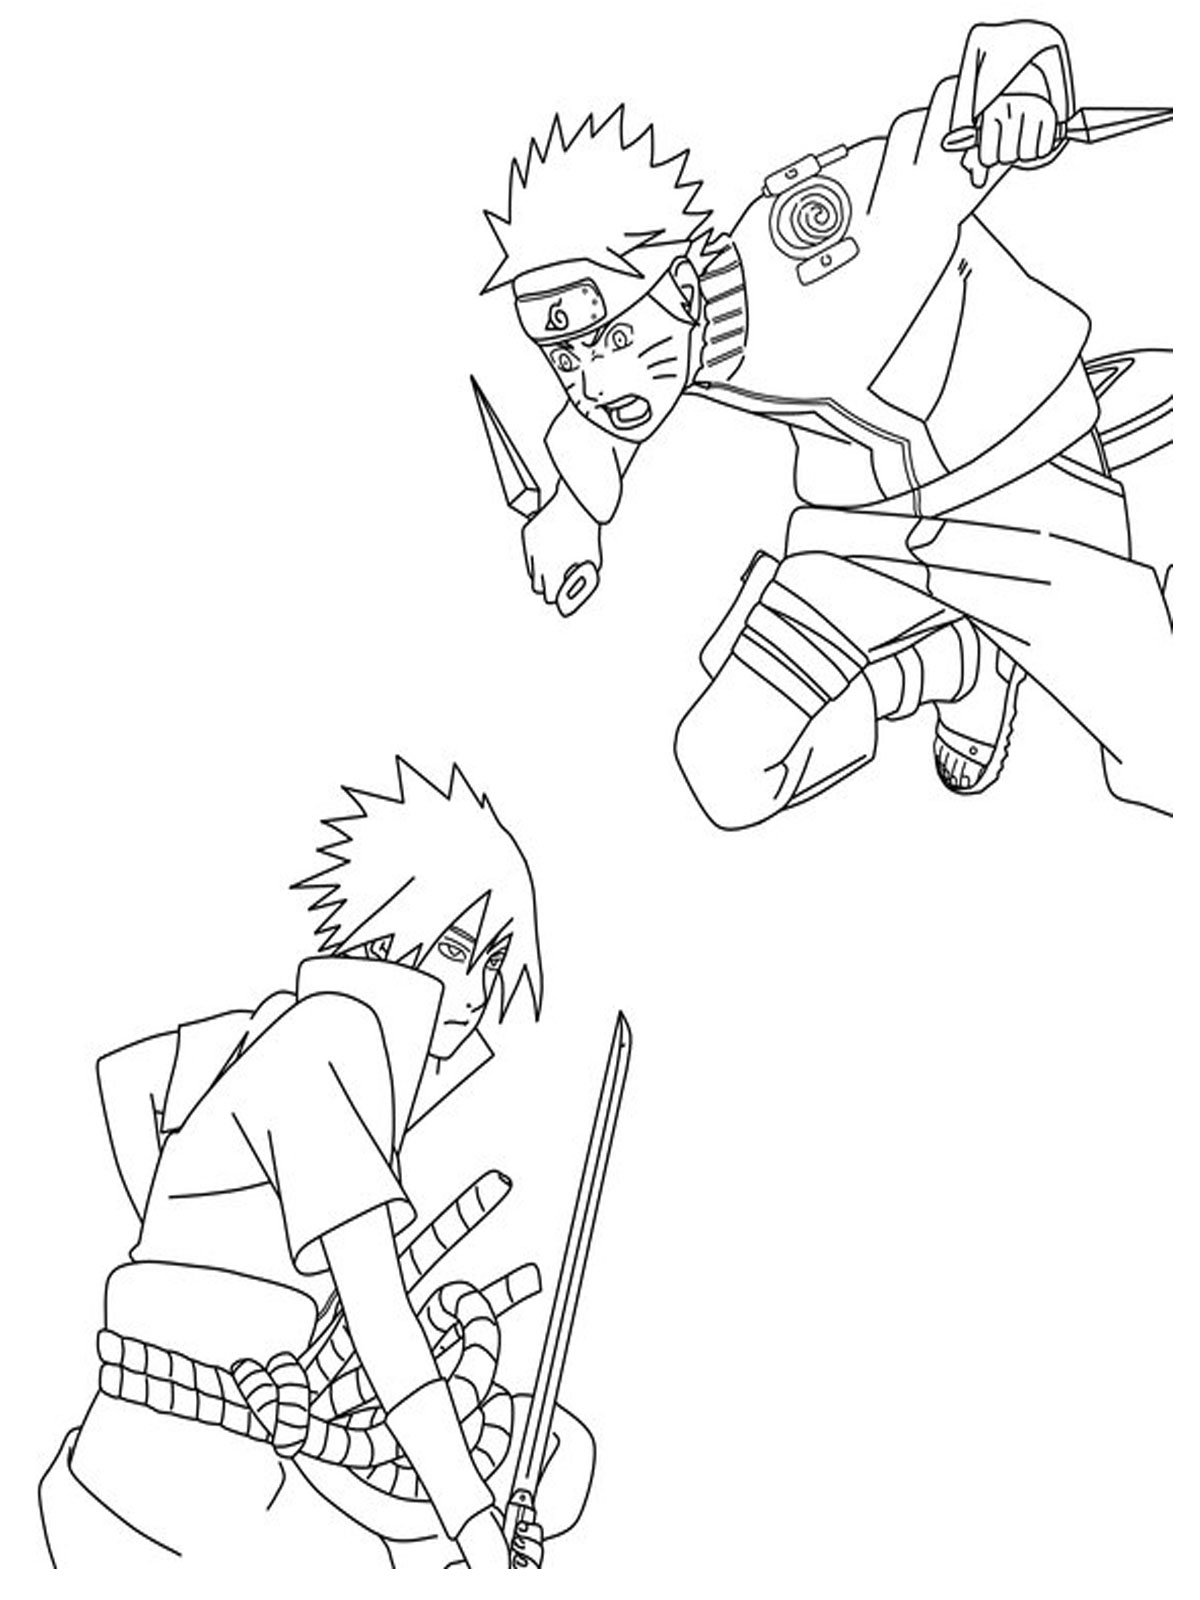 Naruto Coloring Pages Printable Realistic Coloring Pages